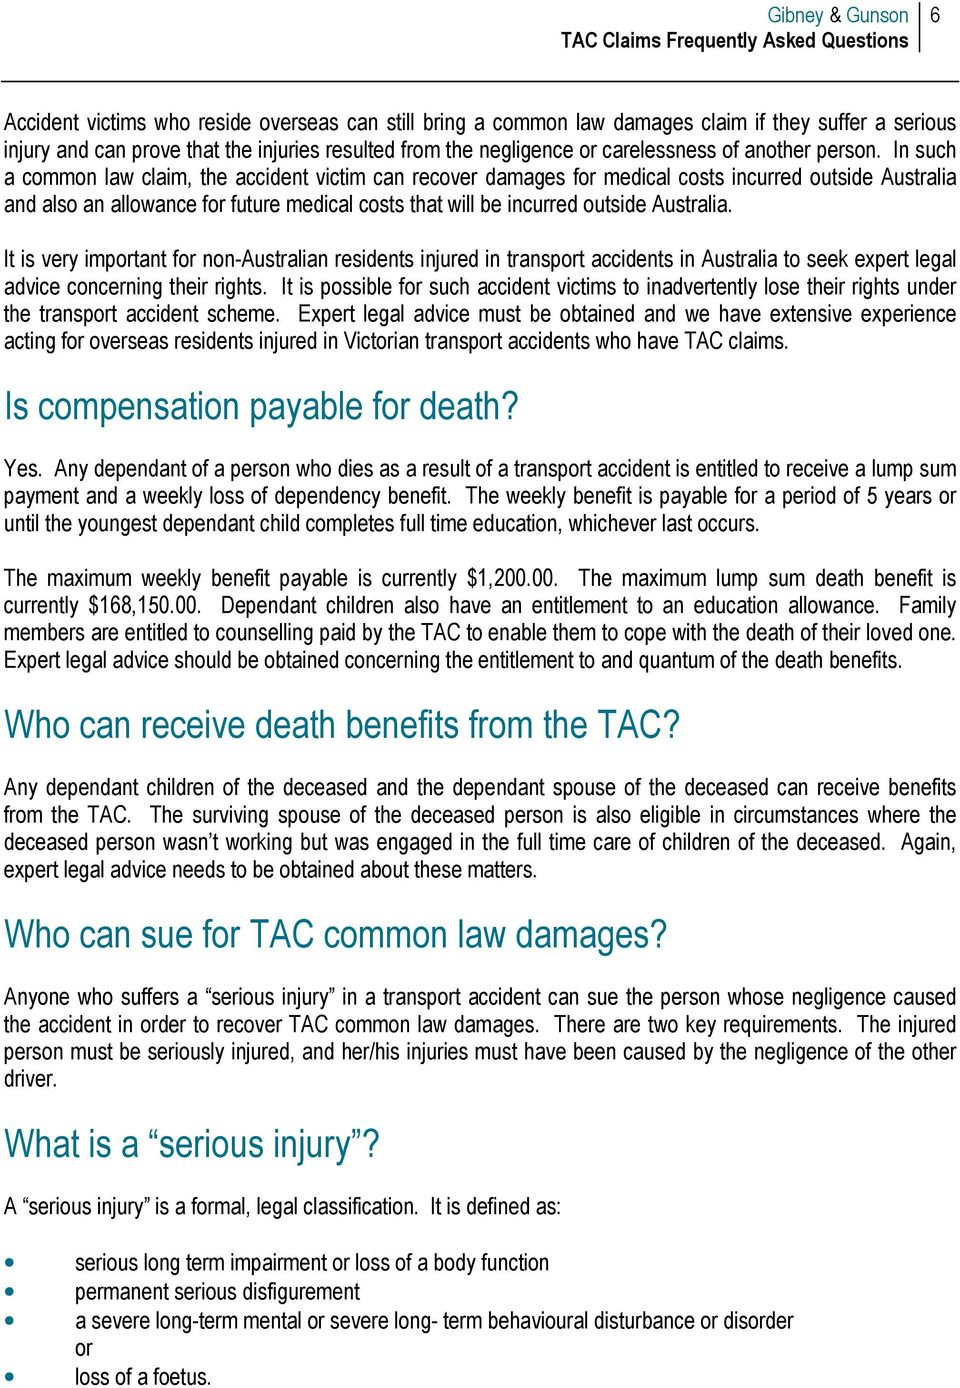 In such a common law claim, the accident victim can recover damages for medical costs incurred outside Australia and also an allowance for future medical costs that will be incurred outside Australia.